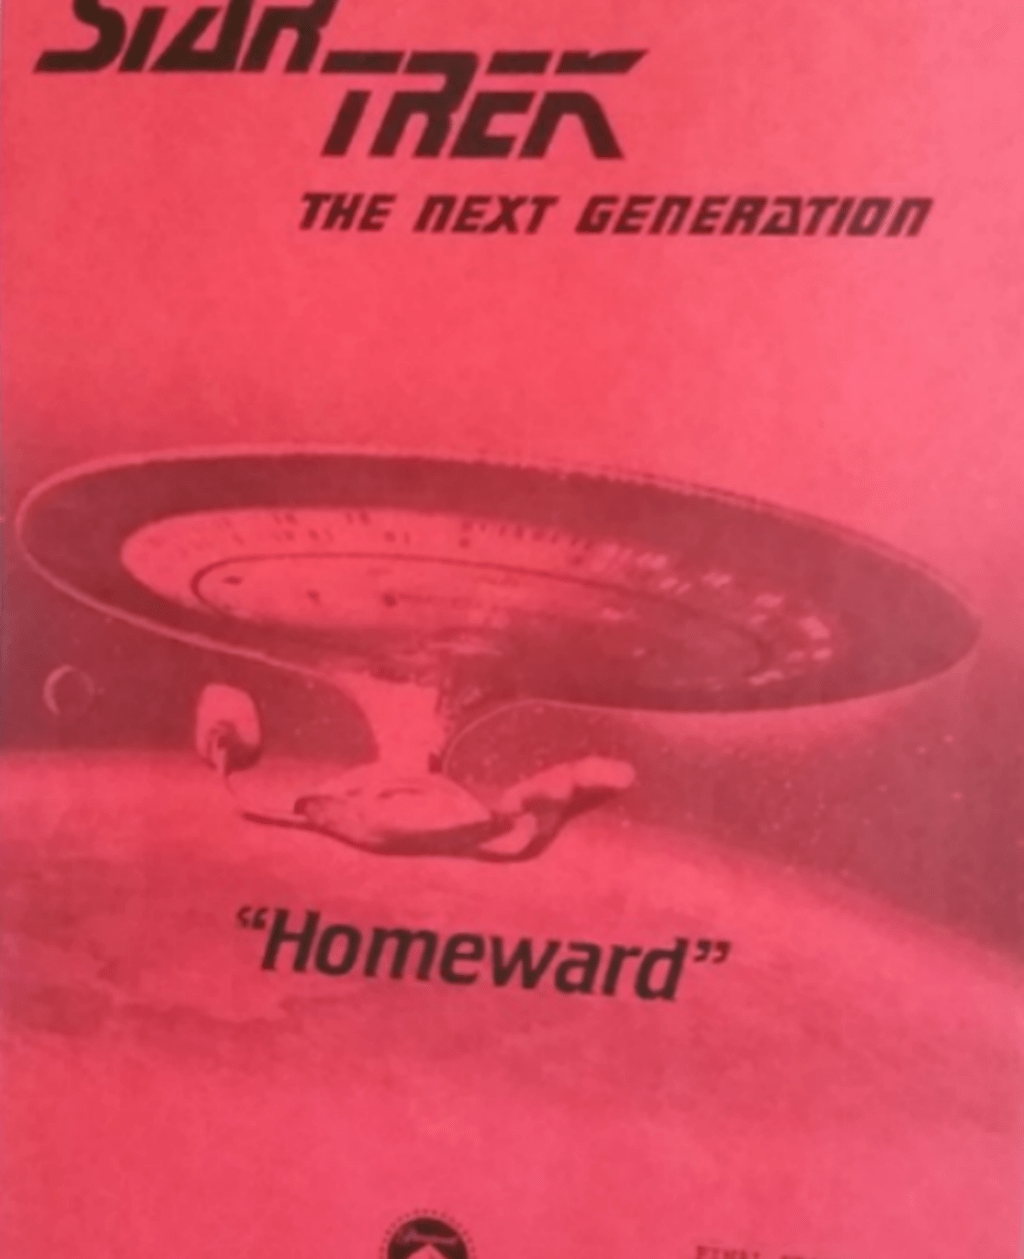 I Wrote For 'Star Trek: The Next Generation'